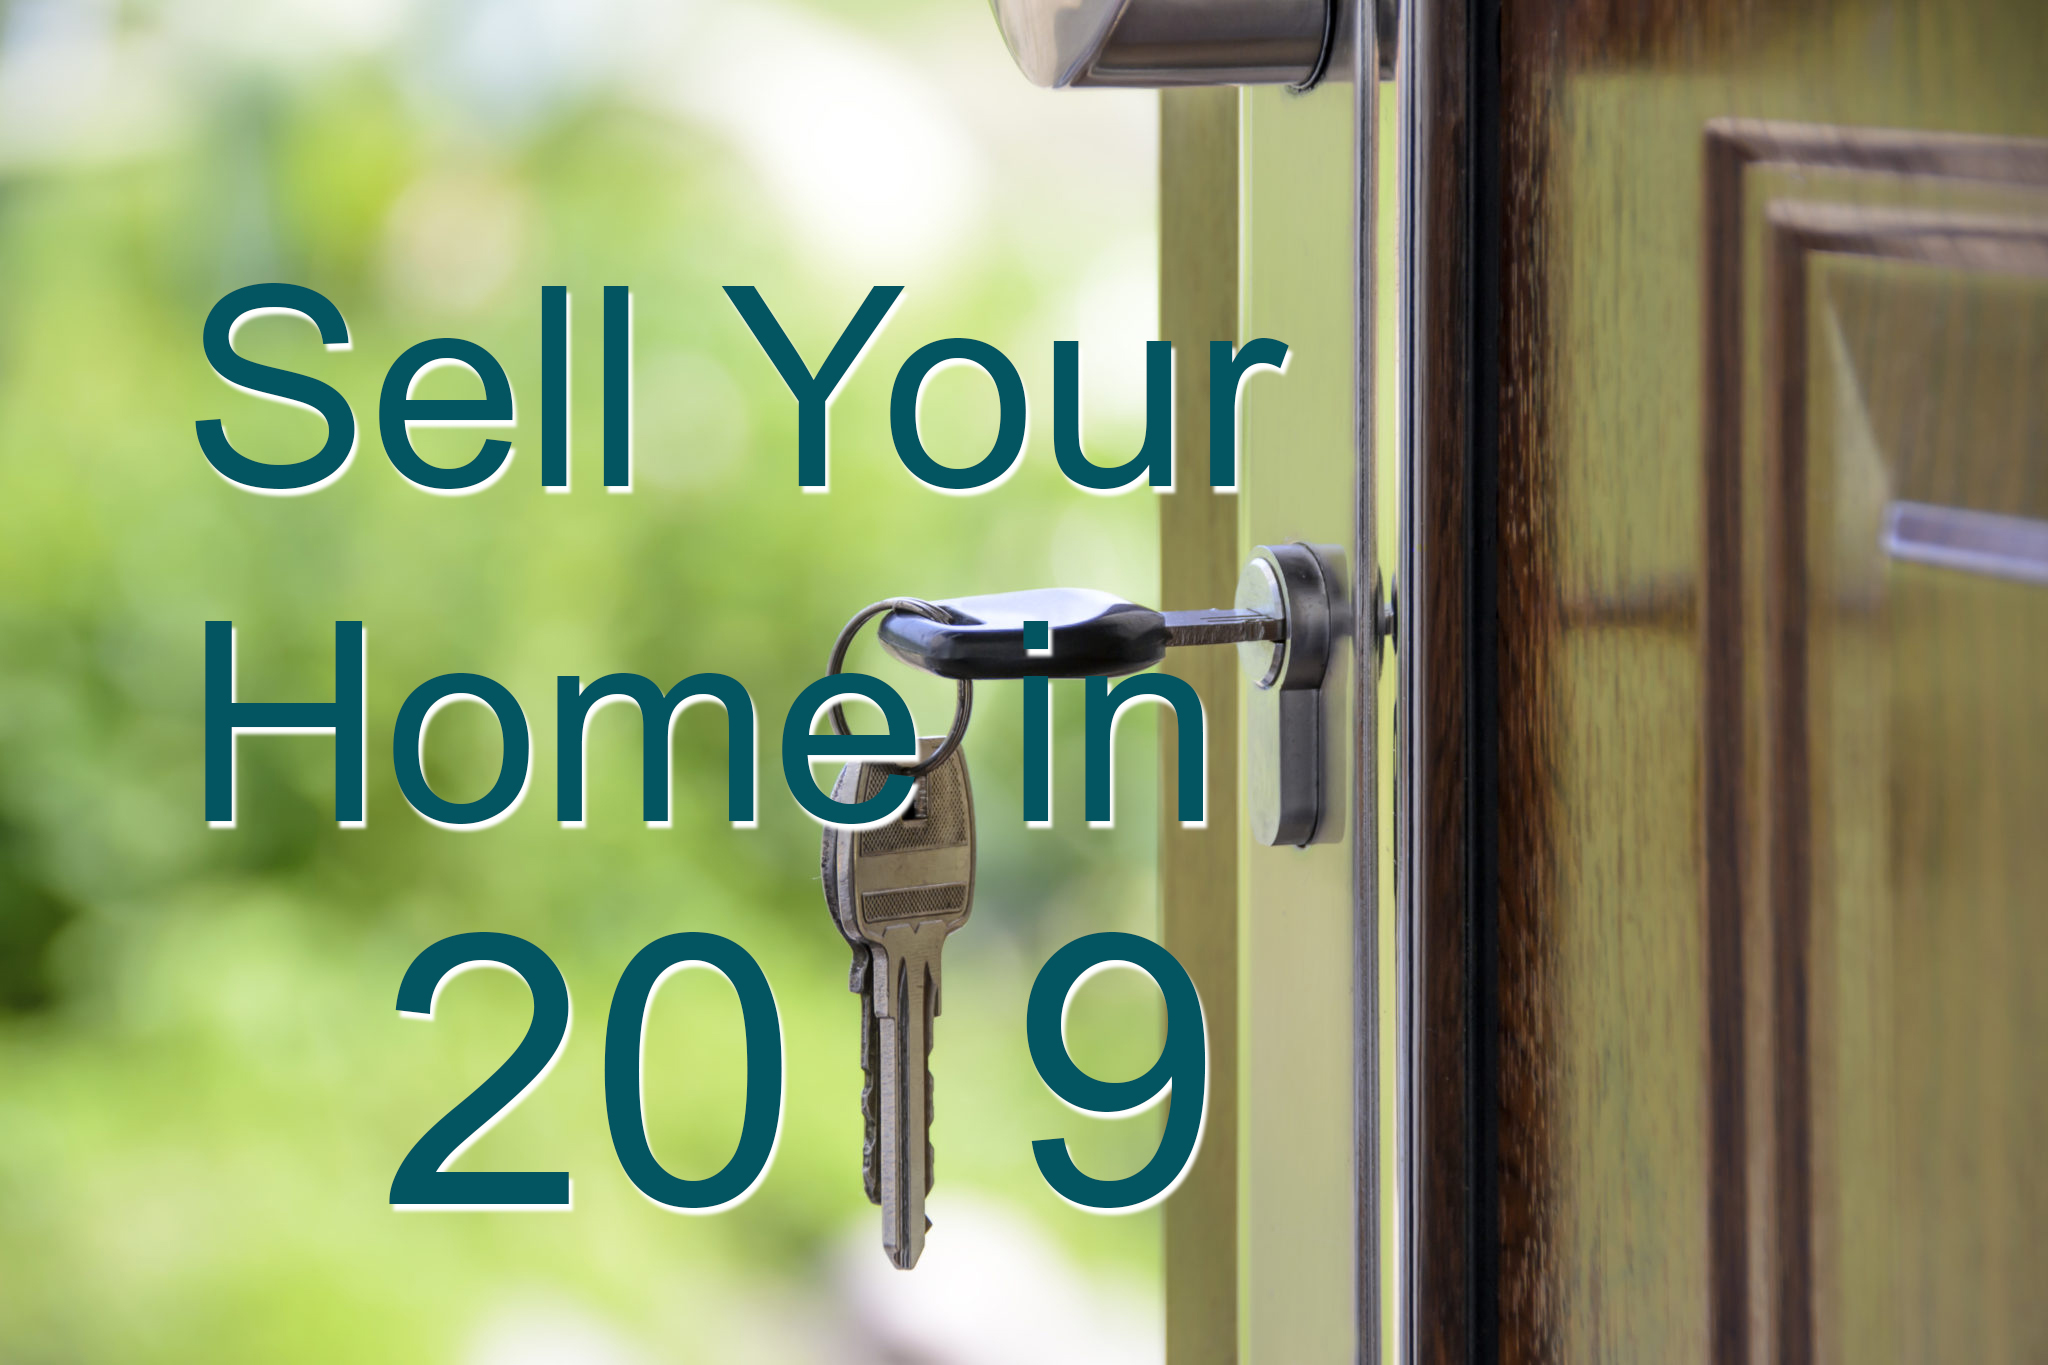 selling your home in 2019?